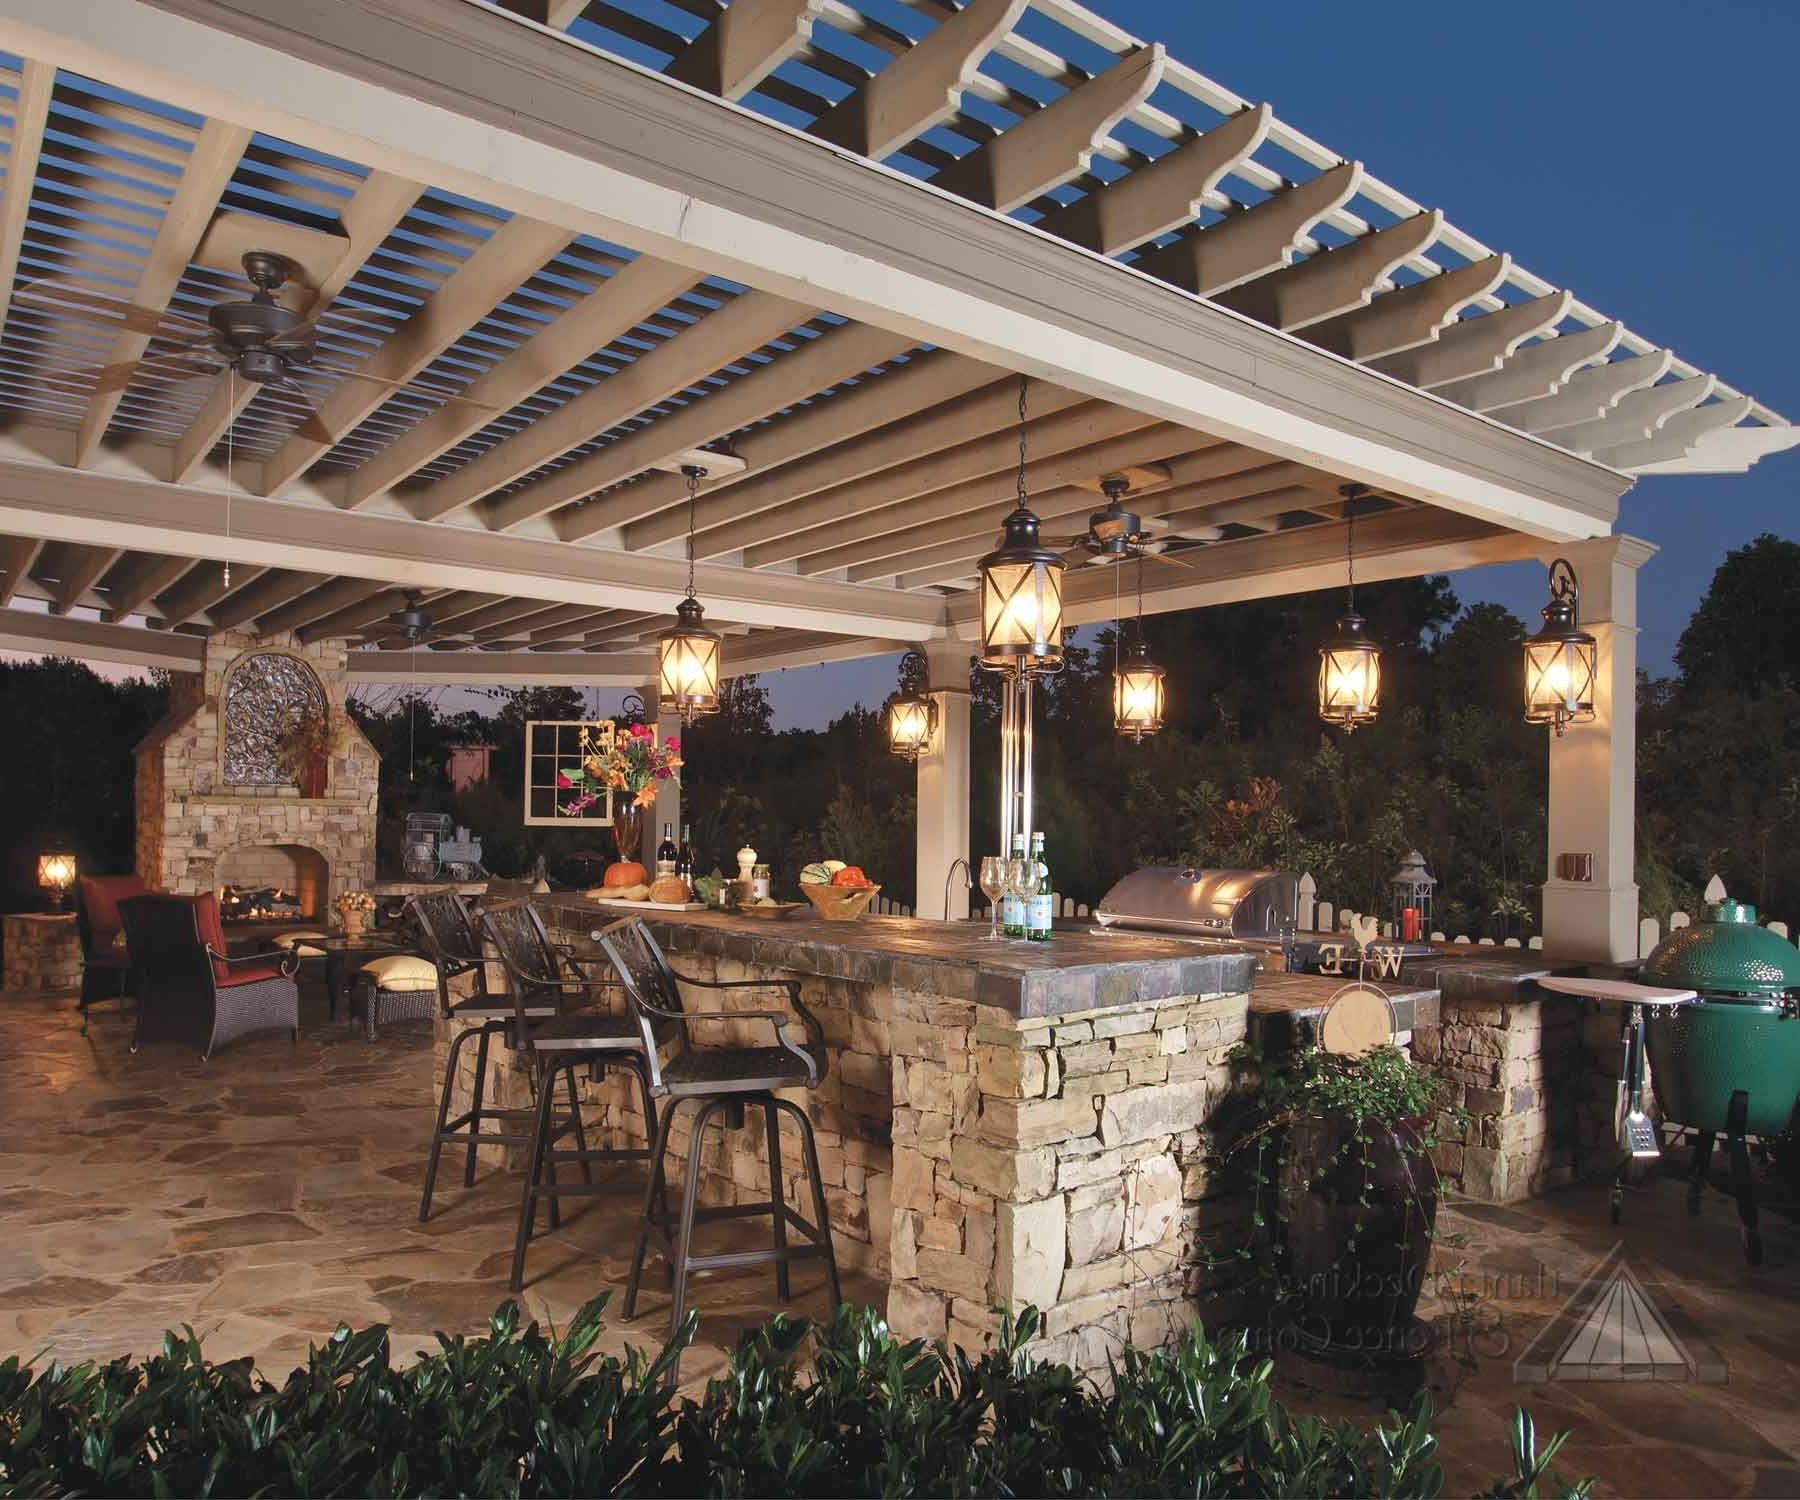 Most Up To Date Outdoor Ceiling Fans For Pergola Throughout The Serving Area May Have A Raised Bar With Stools To Allow Guests (View 18 of 20)